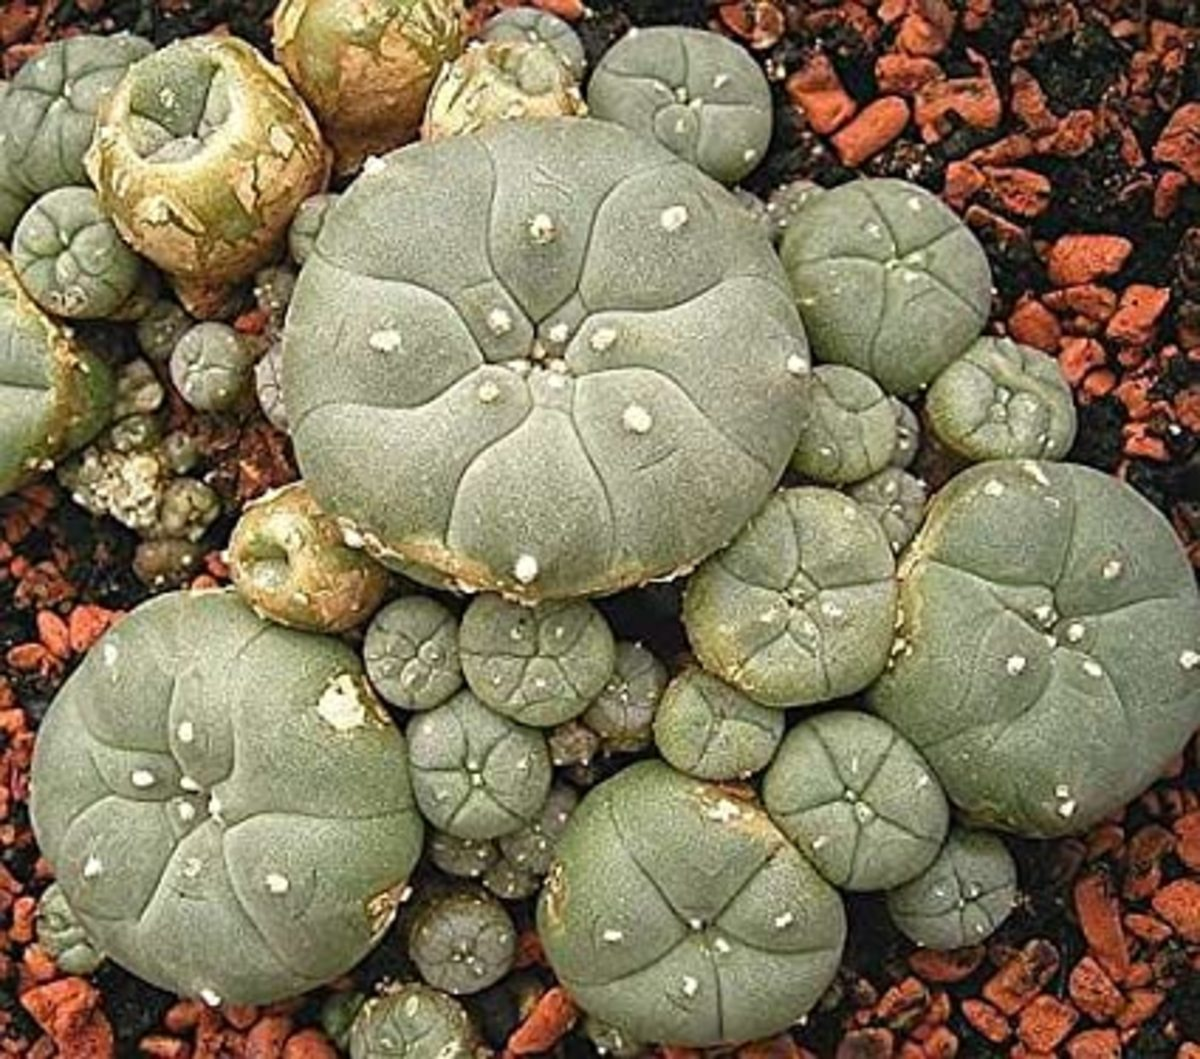 The Peyote plant includes a remarkable list of the ailments